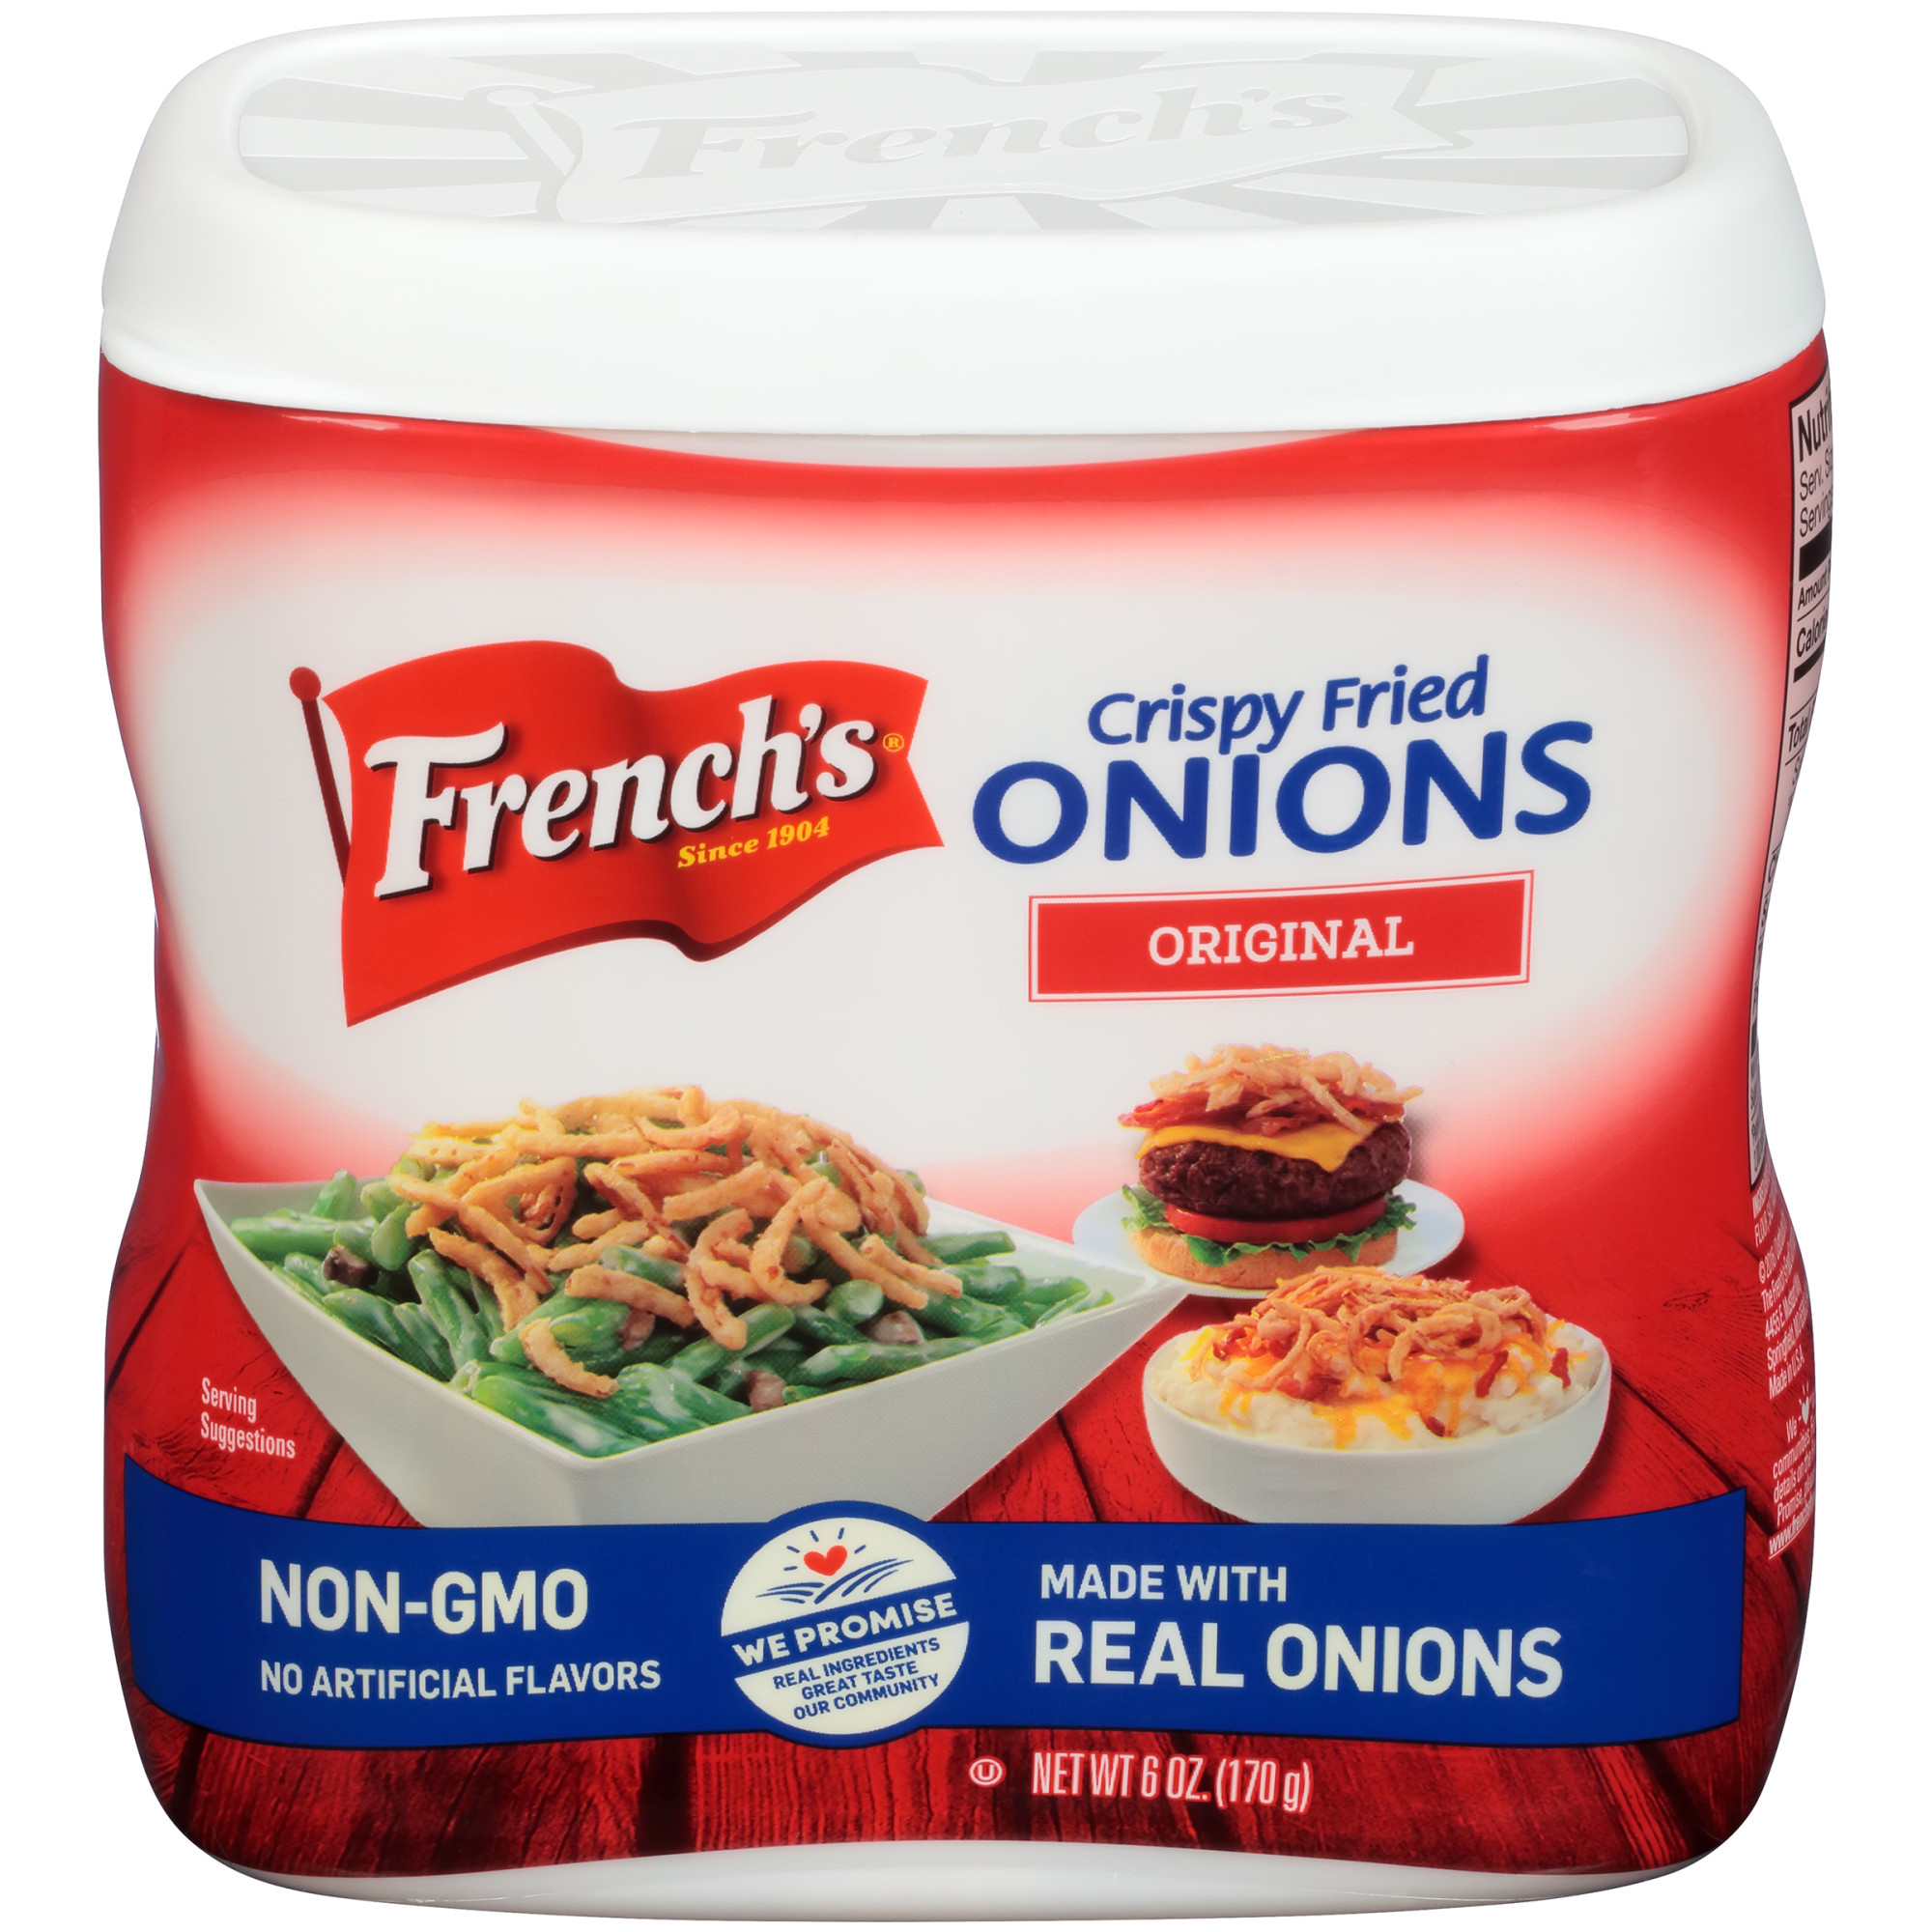 (2 pack) French's Original Crispy Fried Onions (Tasty Onion Flavoring), 6 OZ